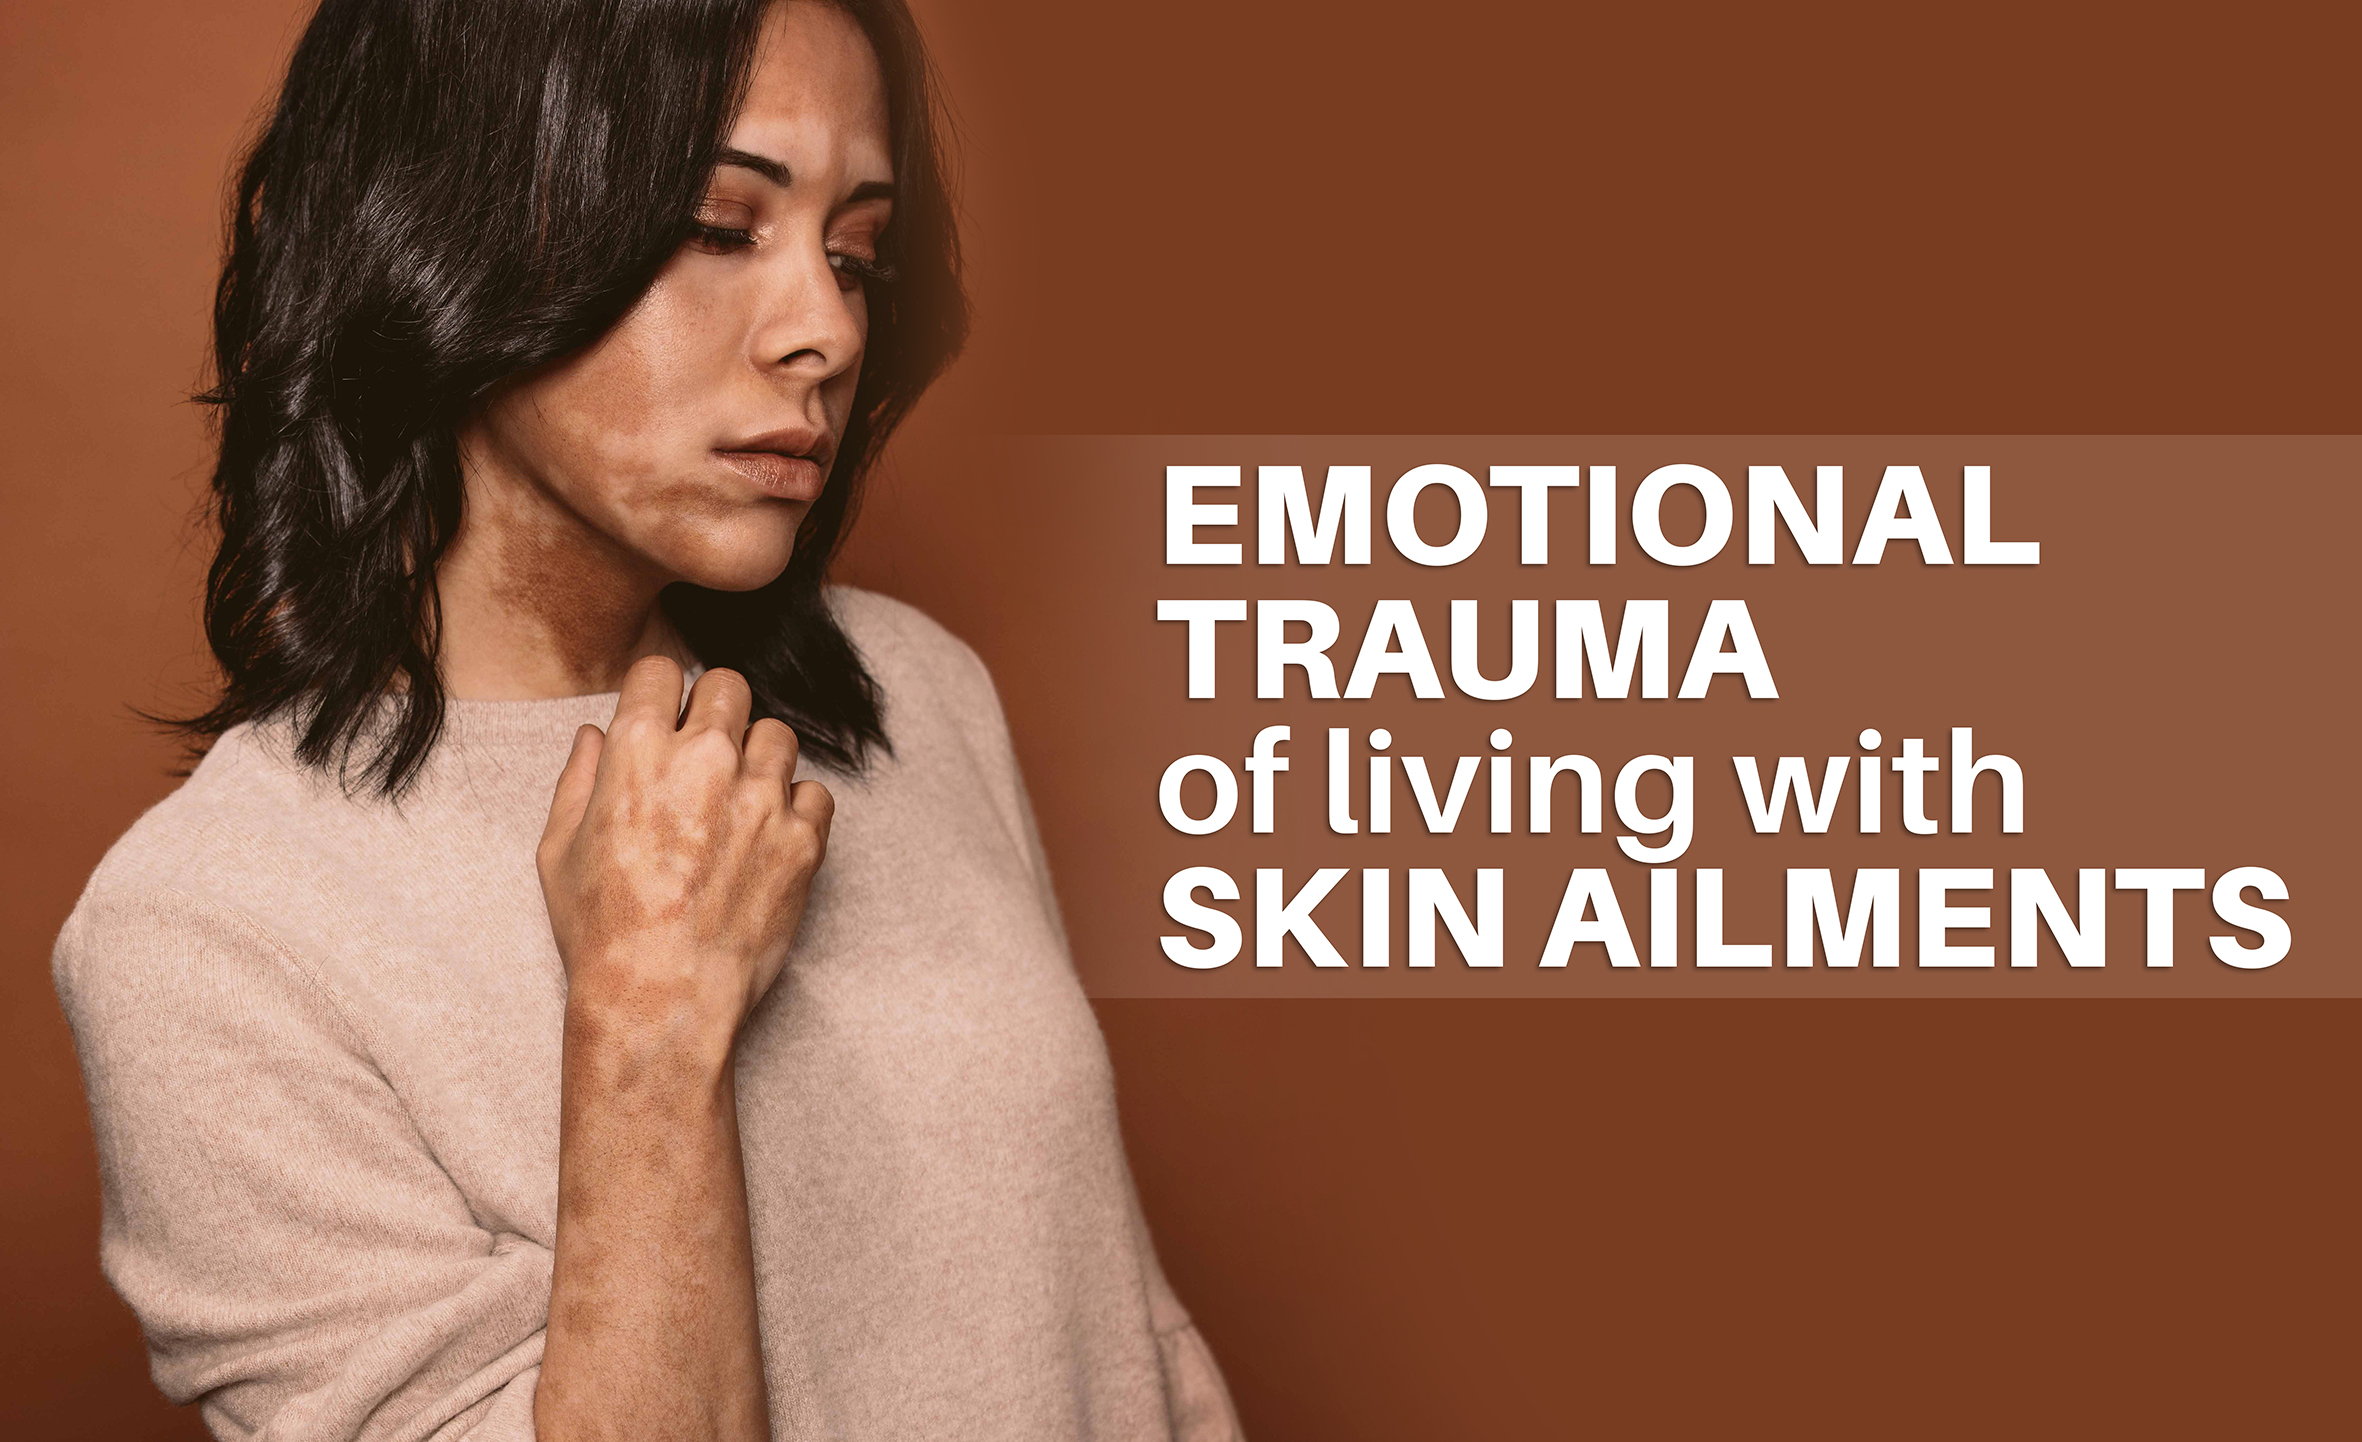 Emotional trauma of living with skin ailments